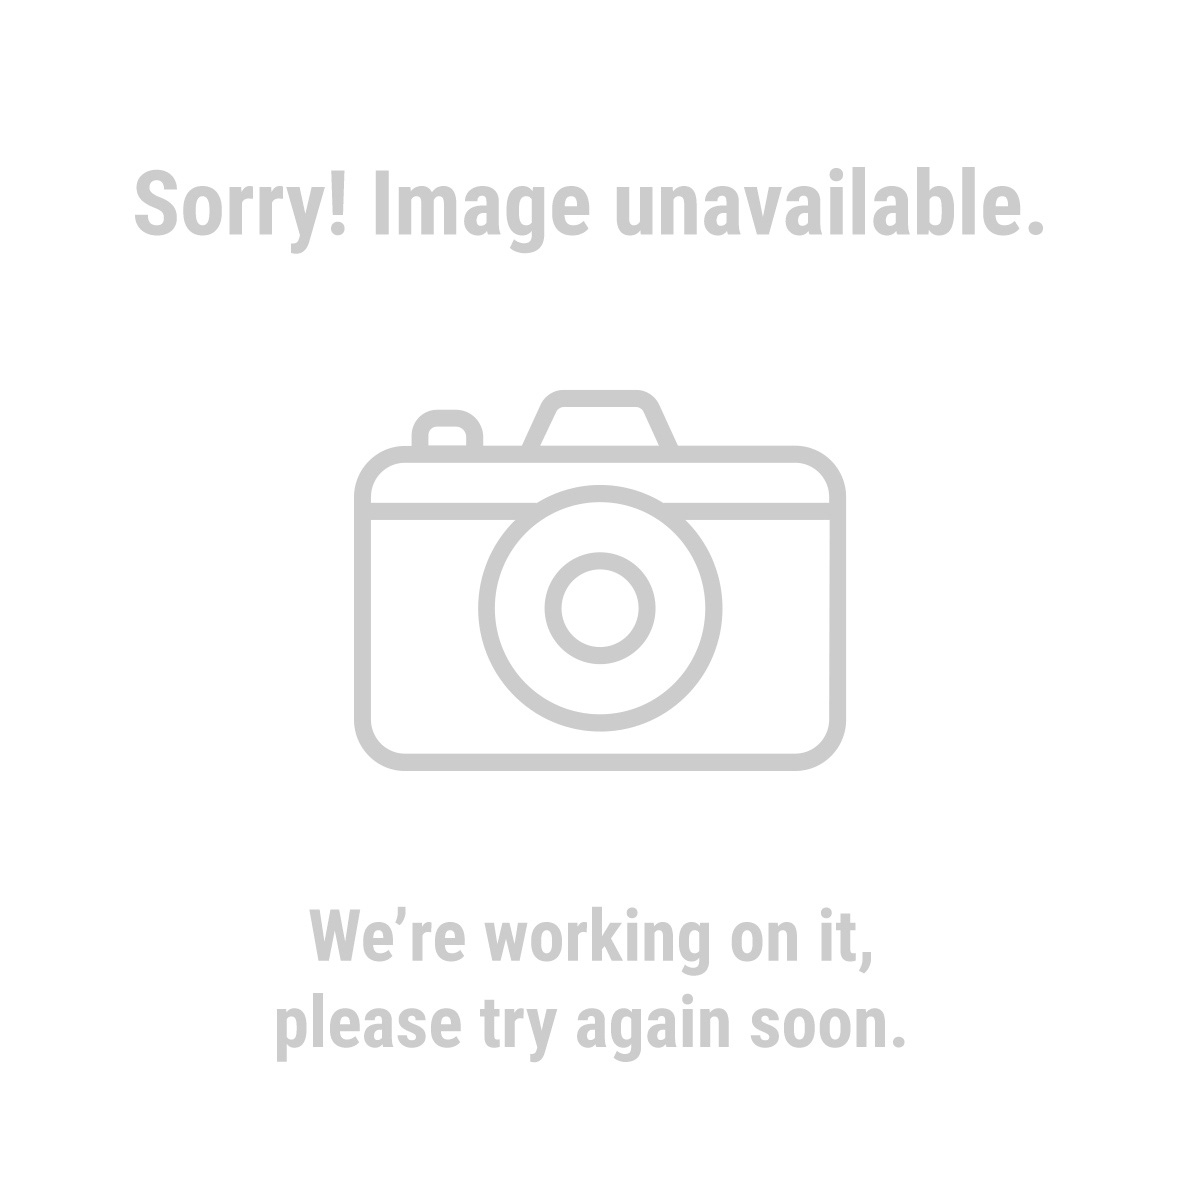 Central Forge 36905 250 Lb. Pull Retrieving Magnet